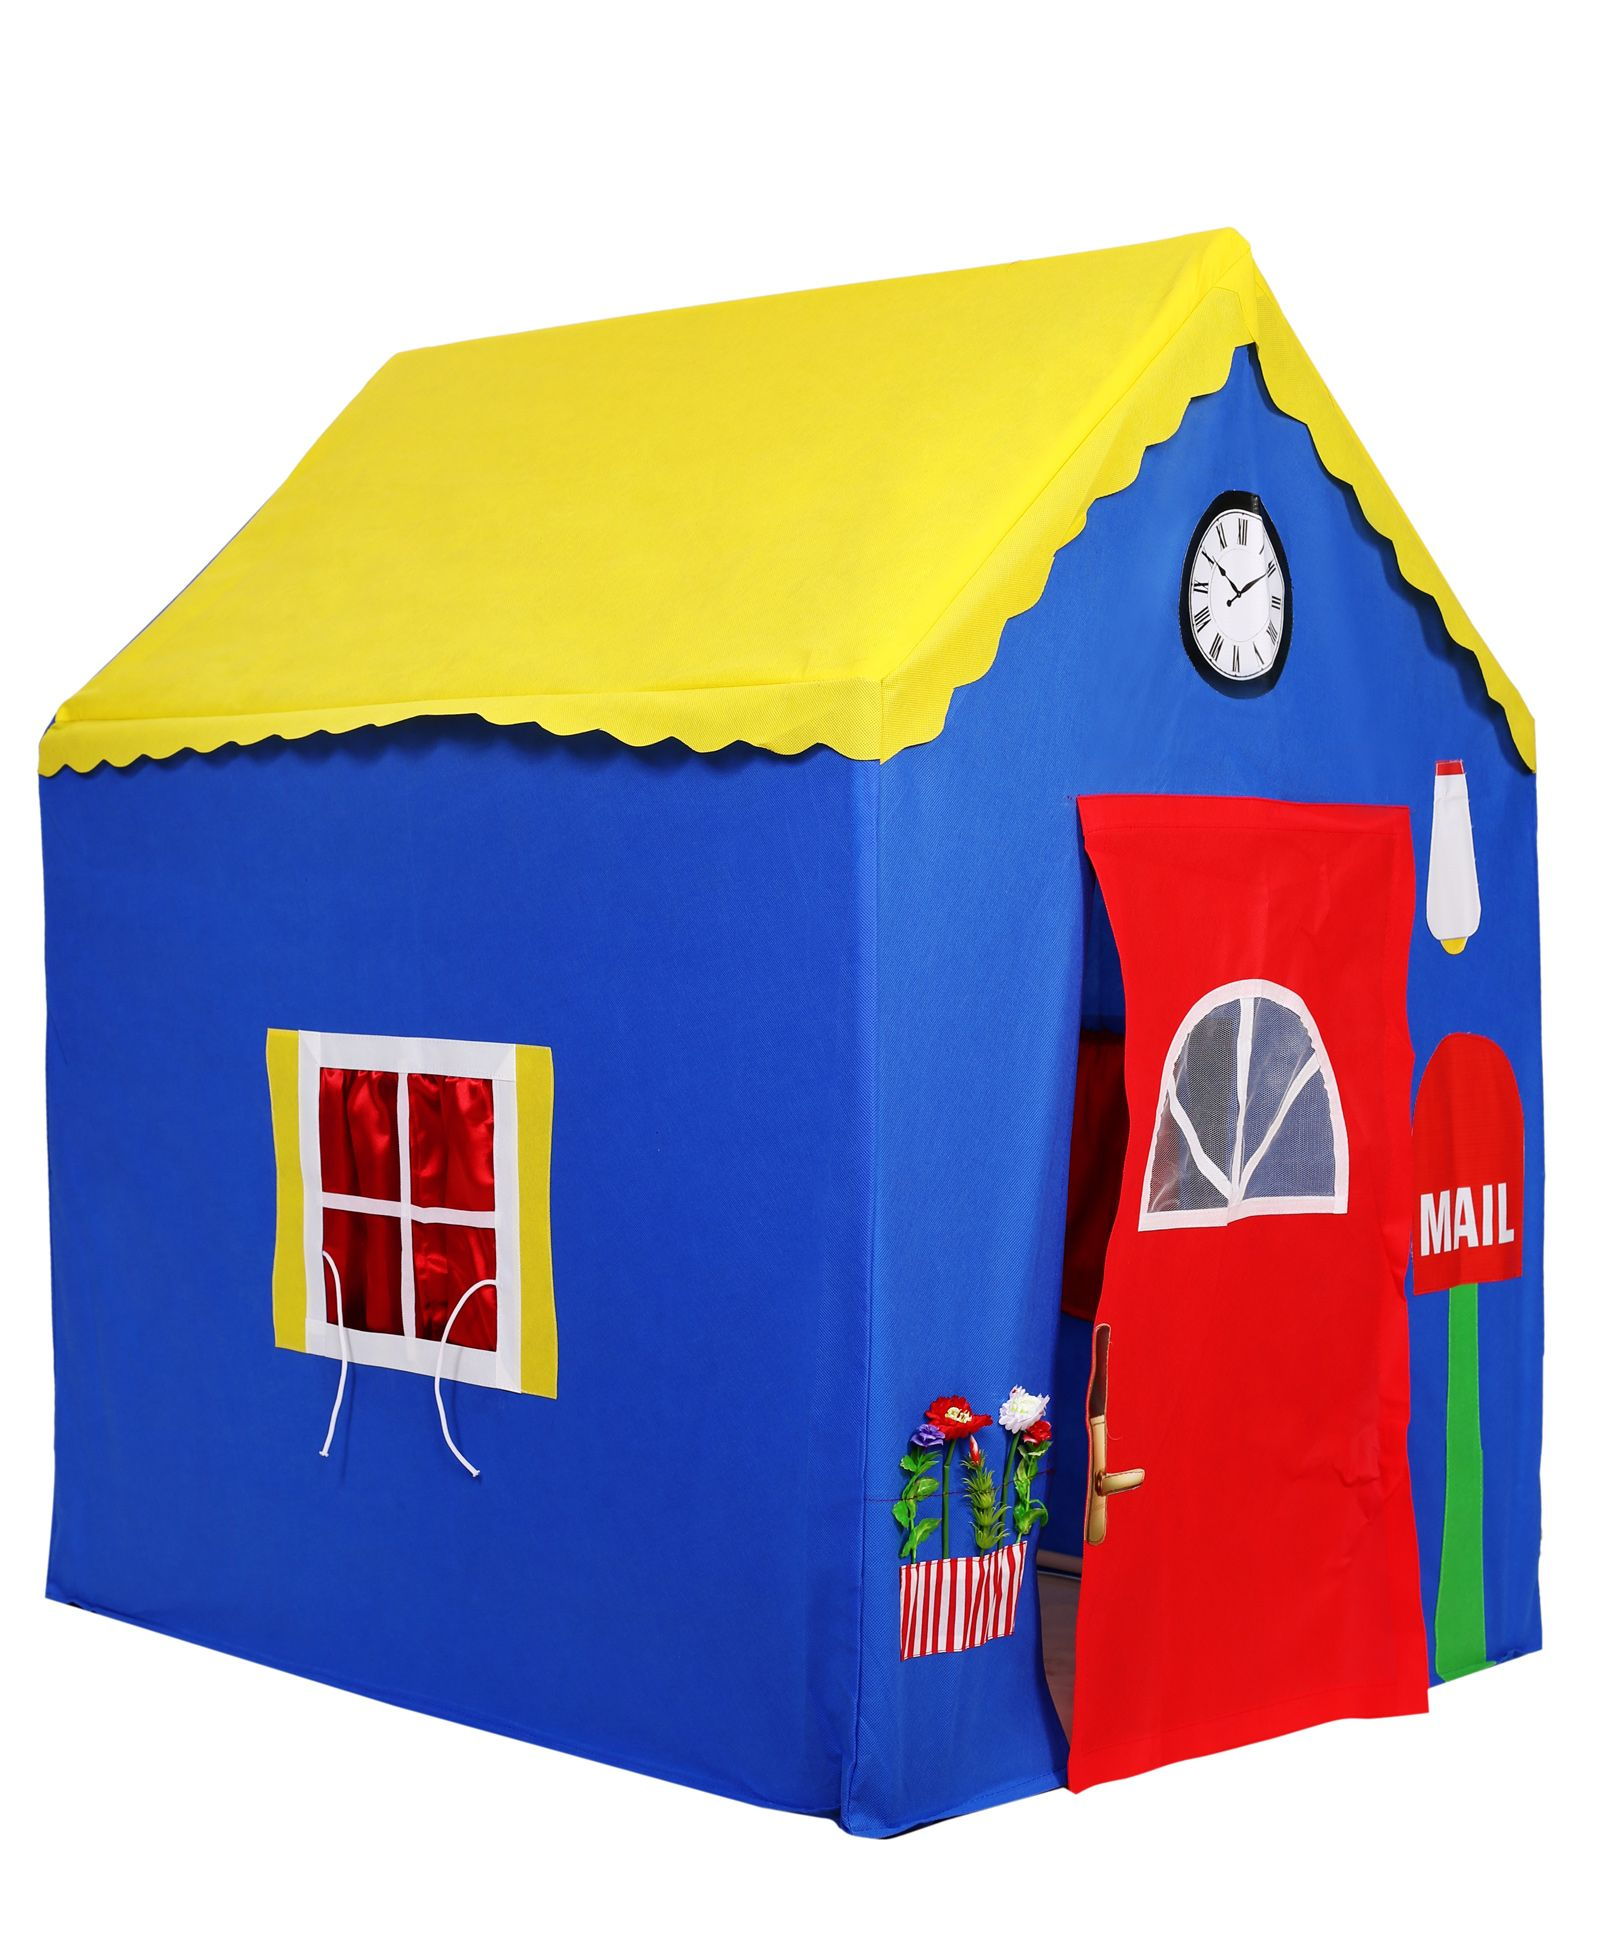 Image of: Playhood Tent House Blue Online India Buy Outdoor Play Equipment For 3 10 Years At Firstcry Com 1878713